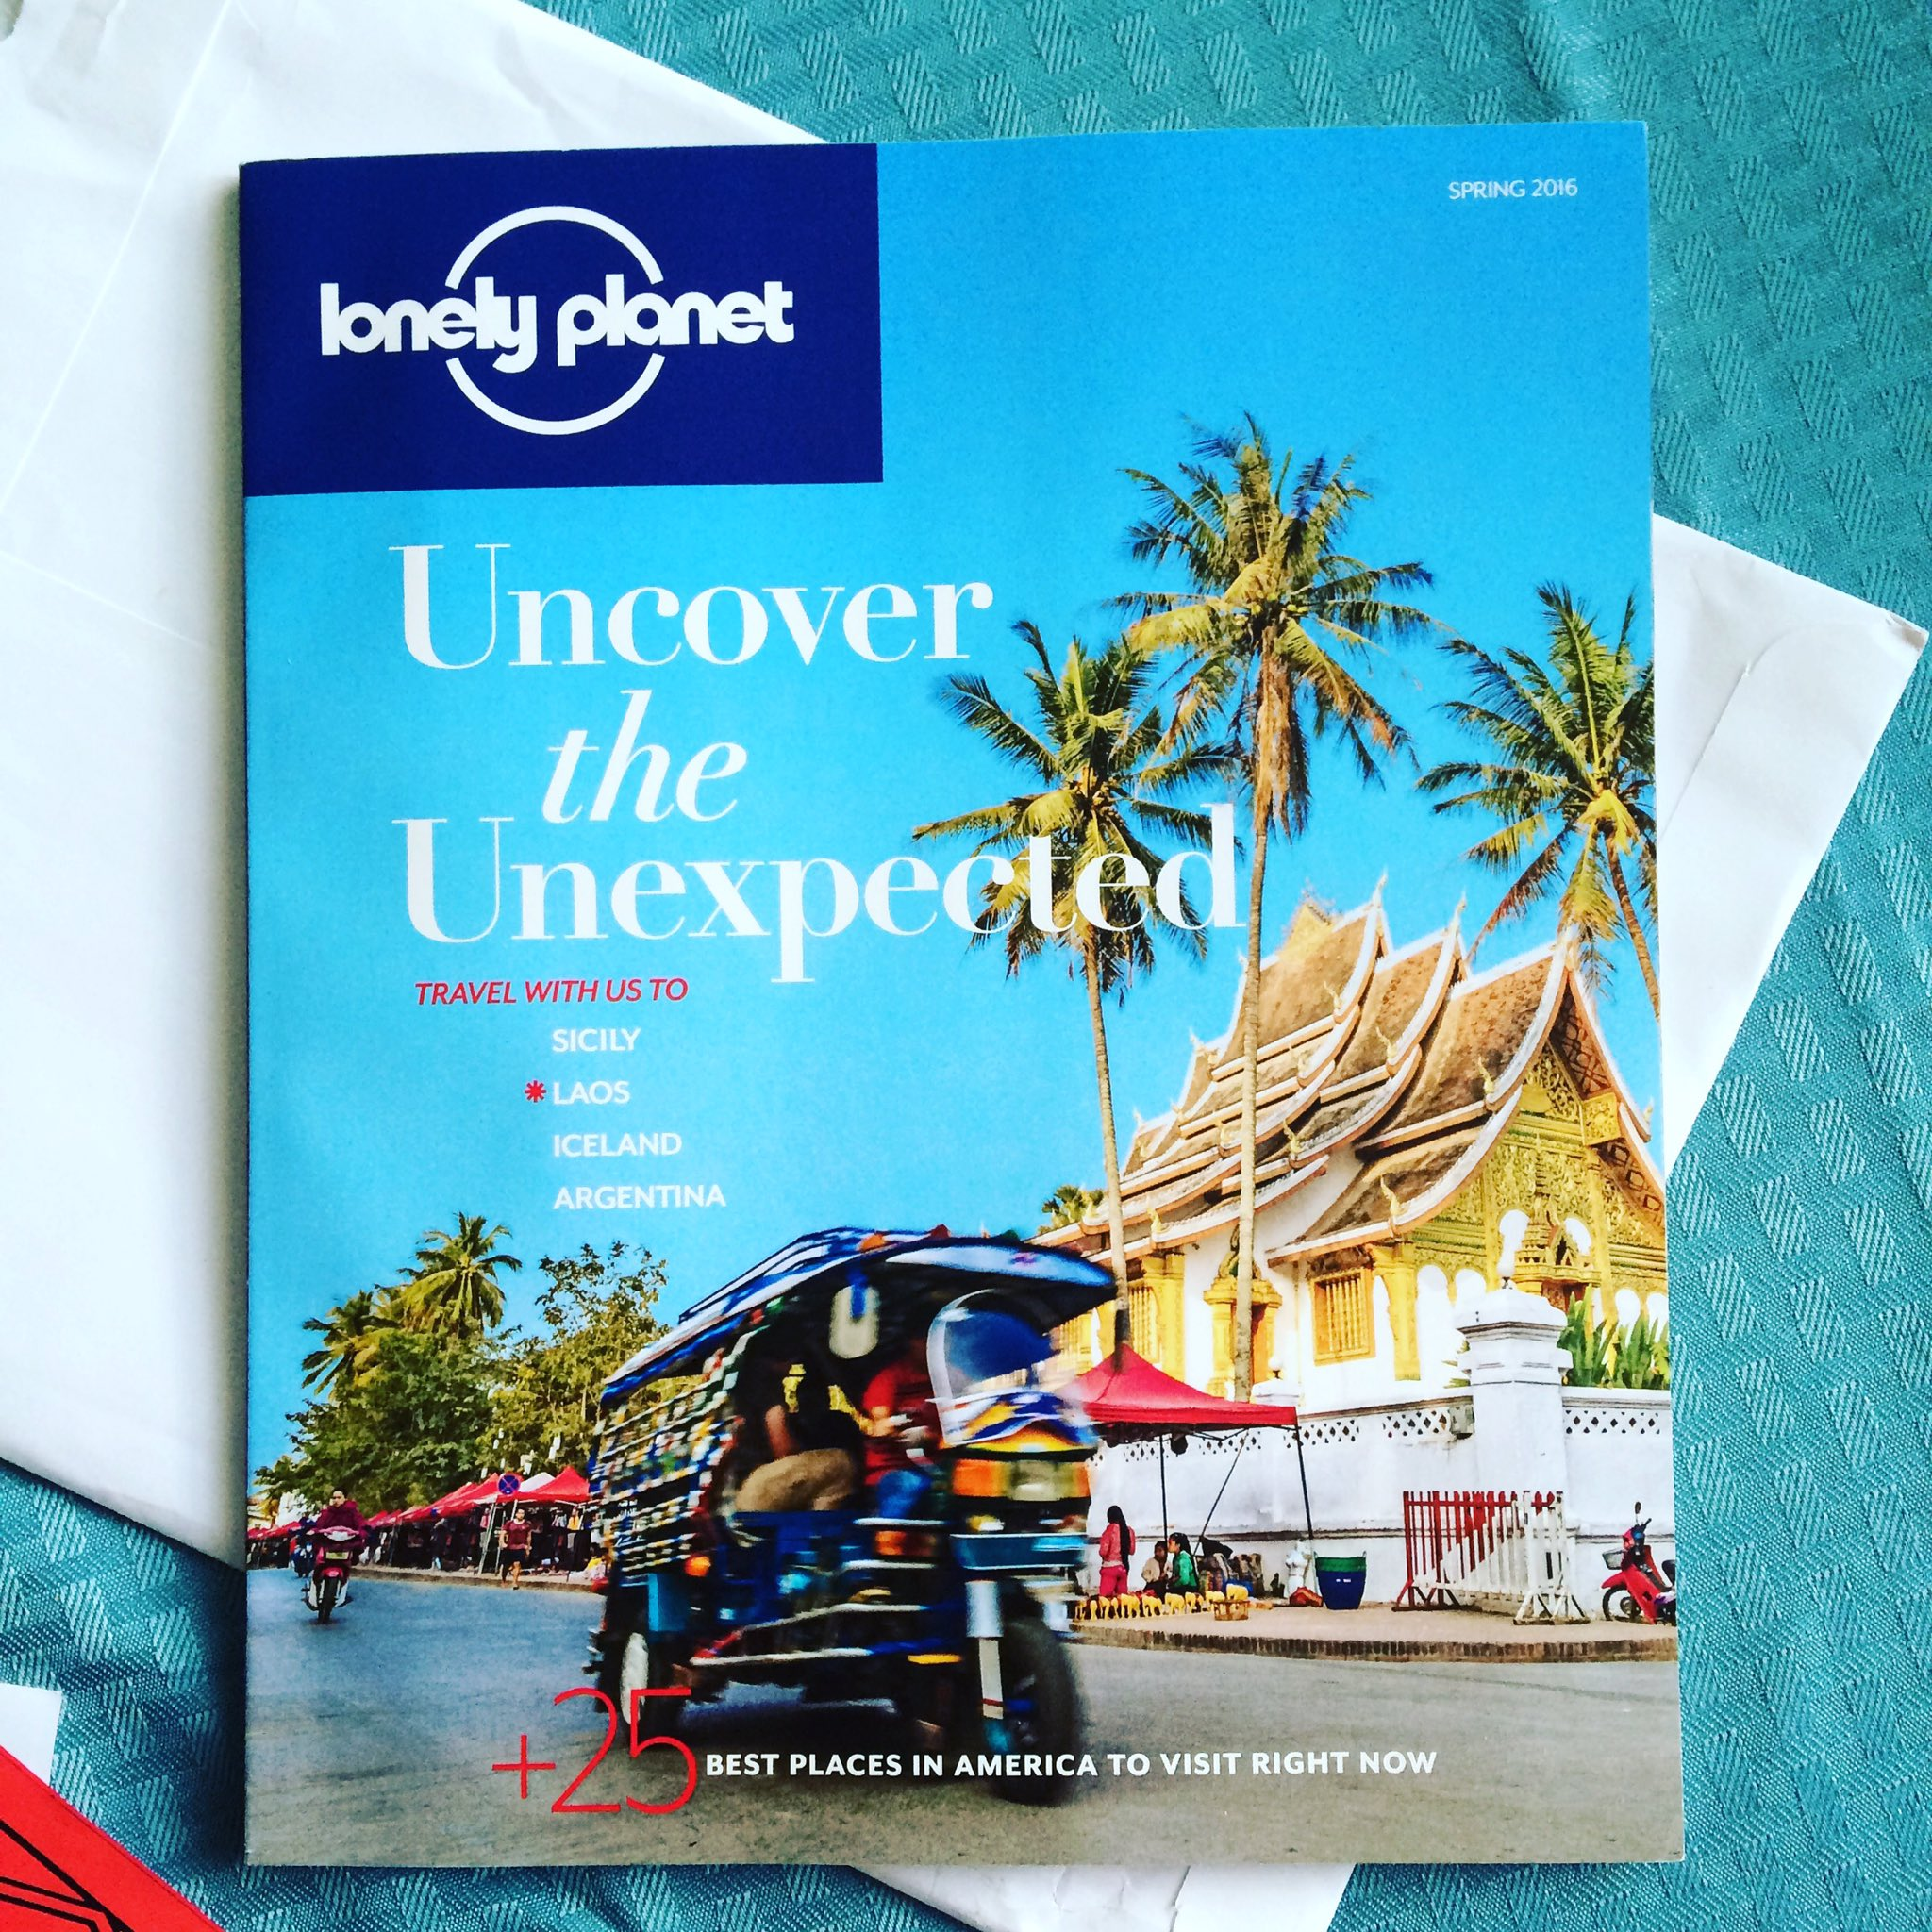 Can't wait to read this! Look out for my review 🌎✈️ @lonelyplanet @lonelyplanetUSA #travel #blogger #goodreads https://t.co/o42ij1EyV1